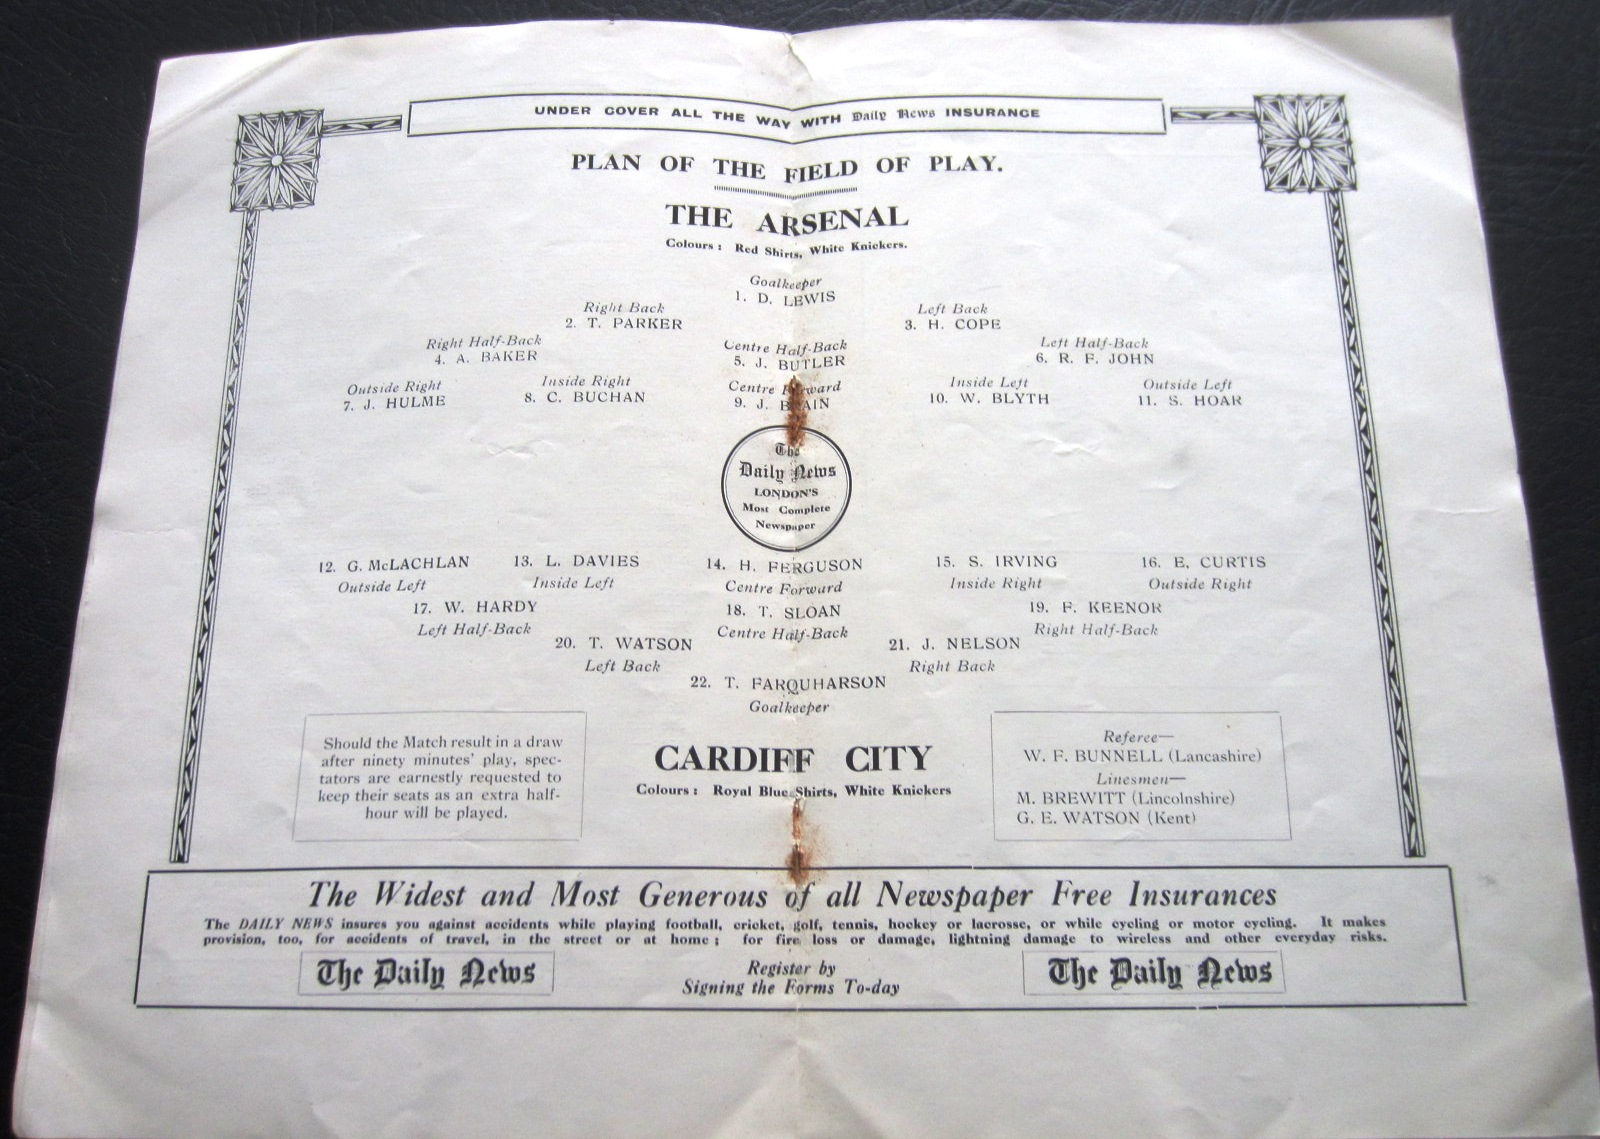 1927 FA CUP FINAL PROGRAMME ARSENAL V CARDIFF CITY - Image 2 of 3